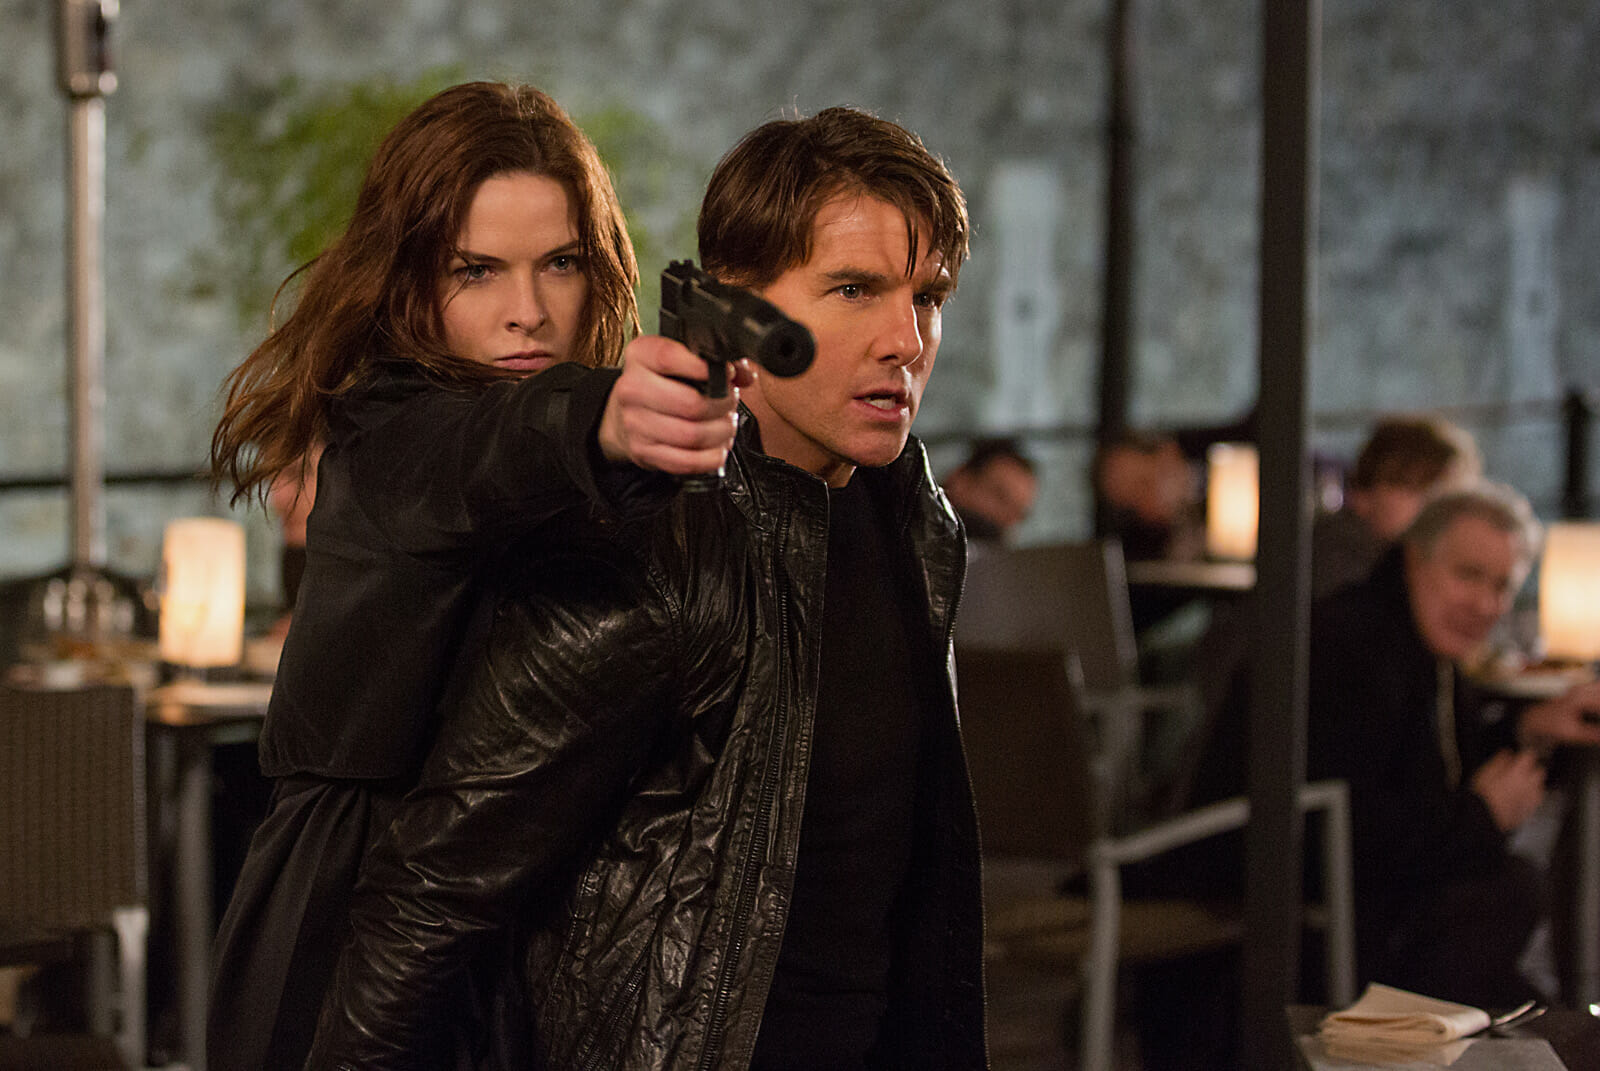 Mission-Impossible-Rogue-Nation-Tom-Cruise-Rebecca-Fergusson